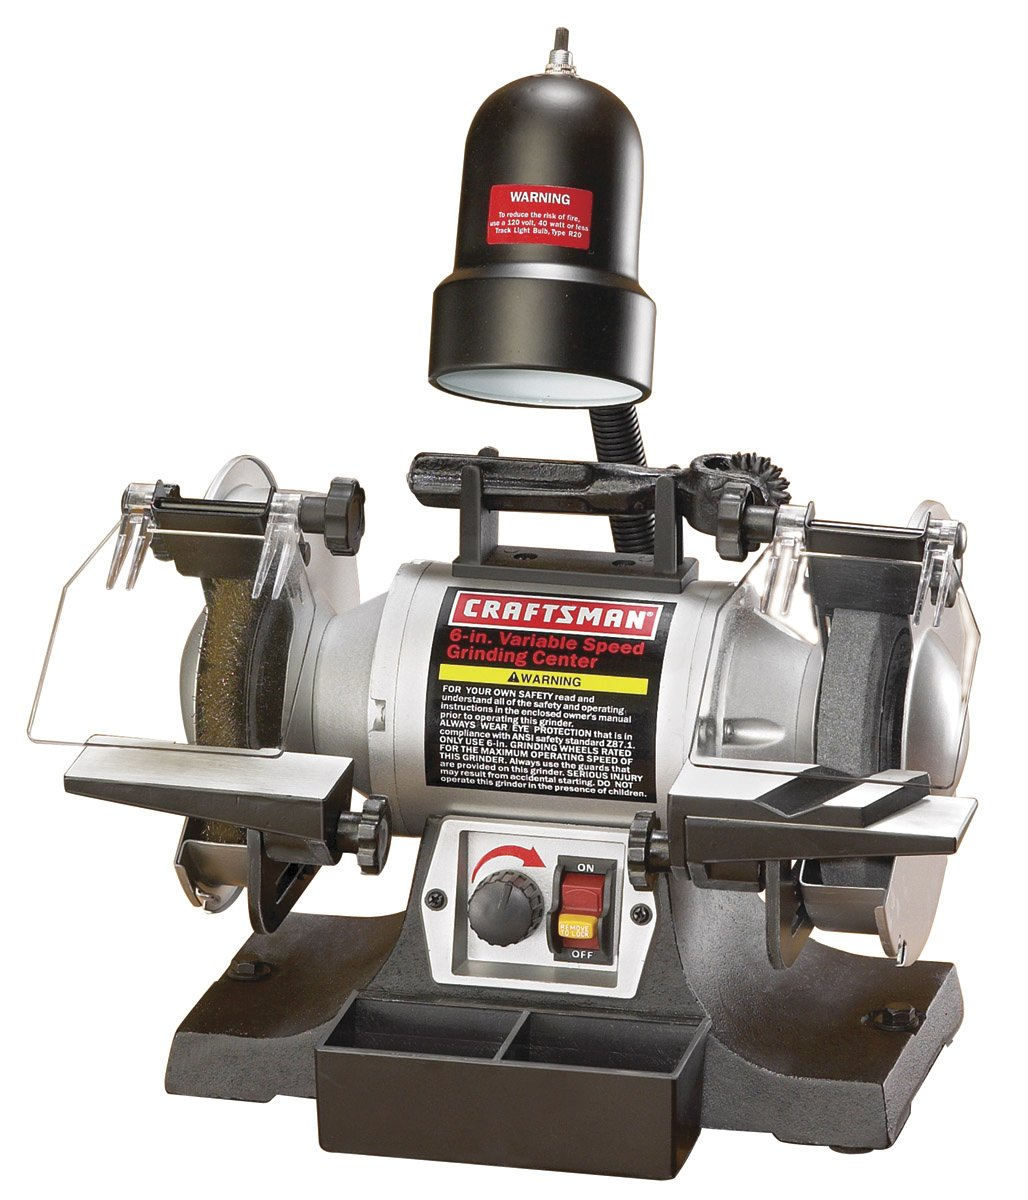 CRAFTSMAN 921154 6'' Variable Speed Grinding Center